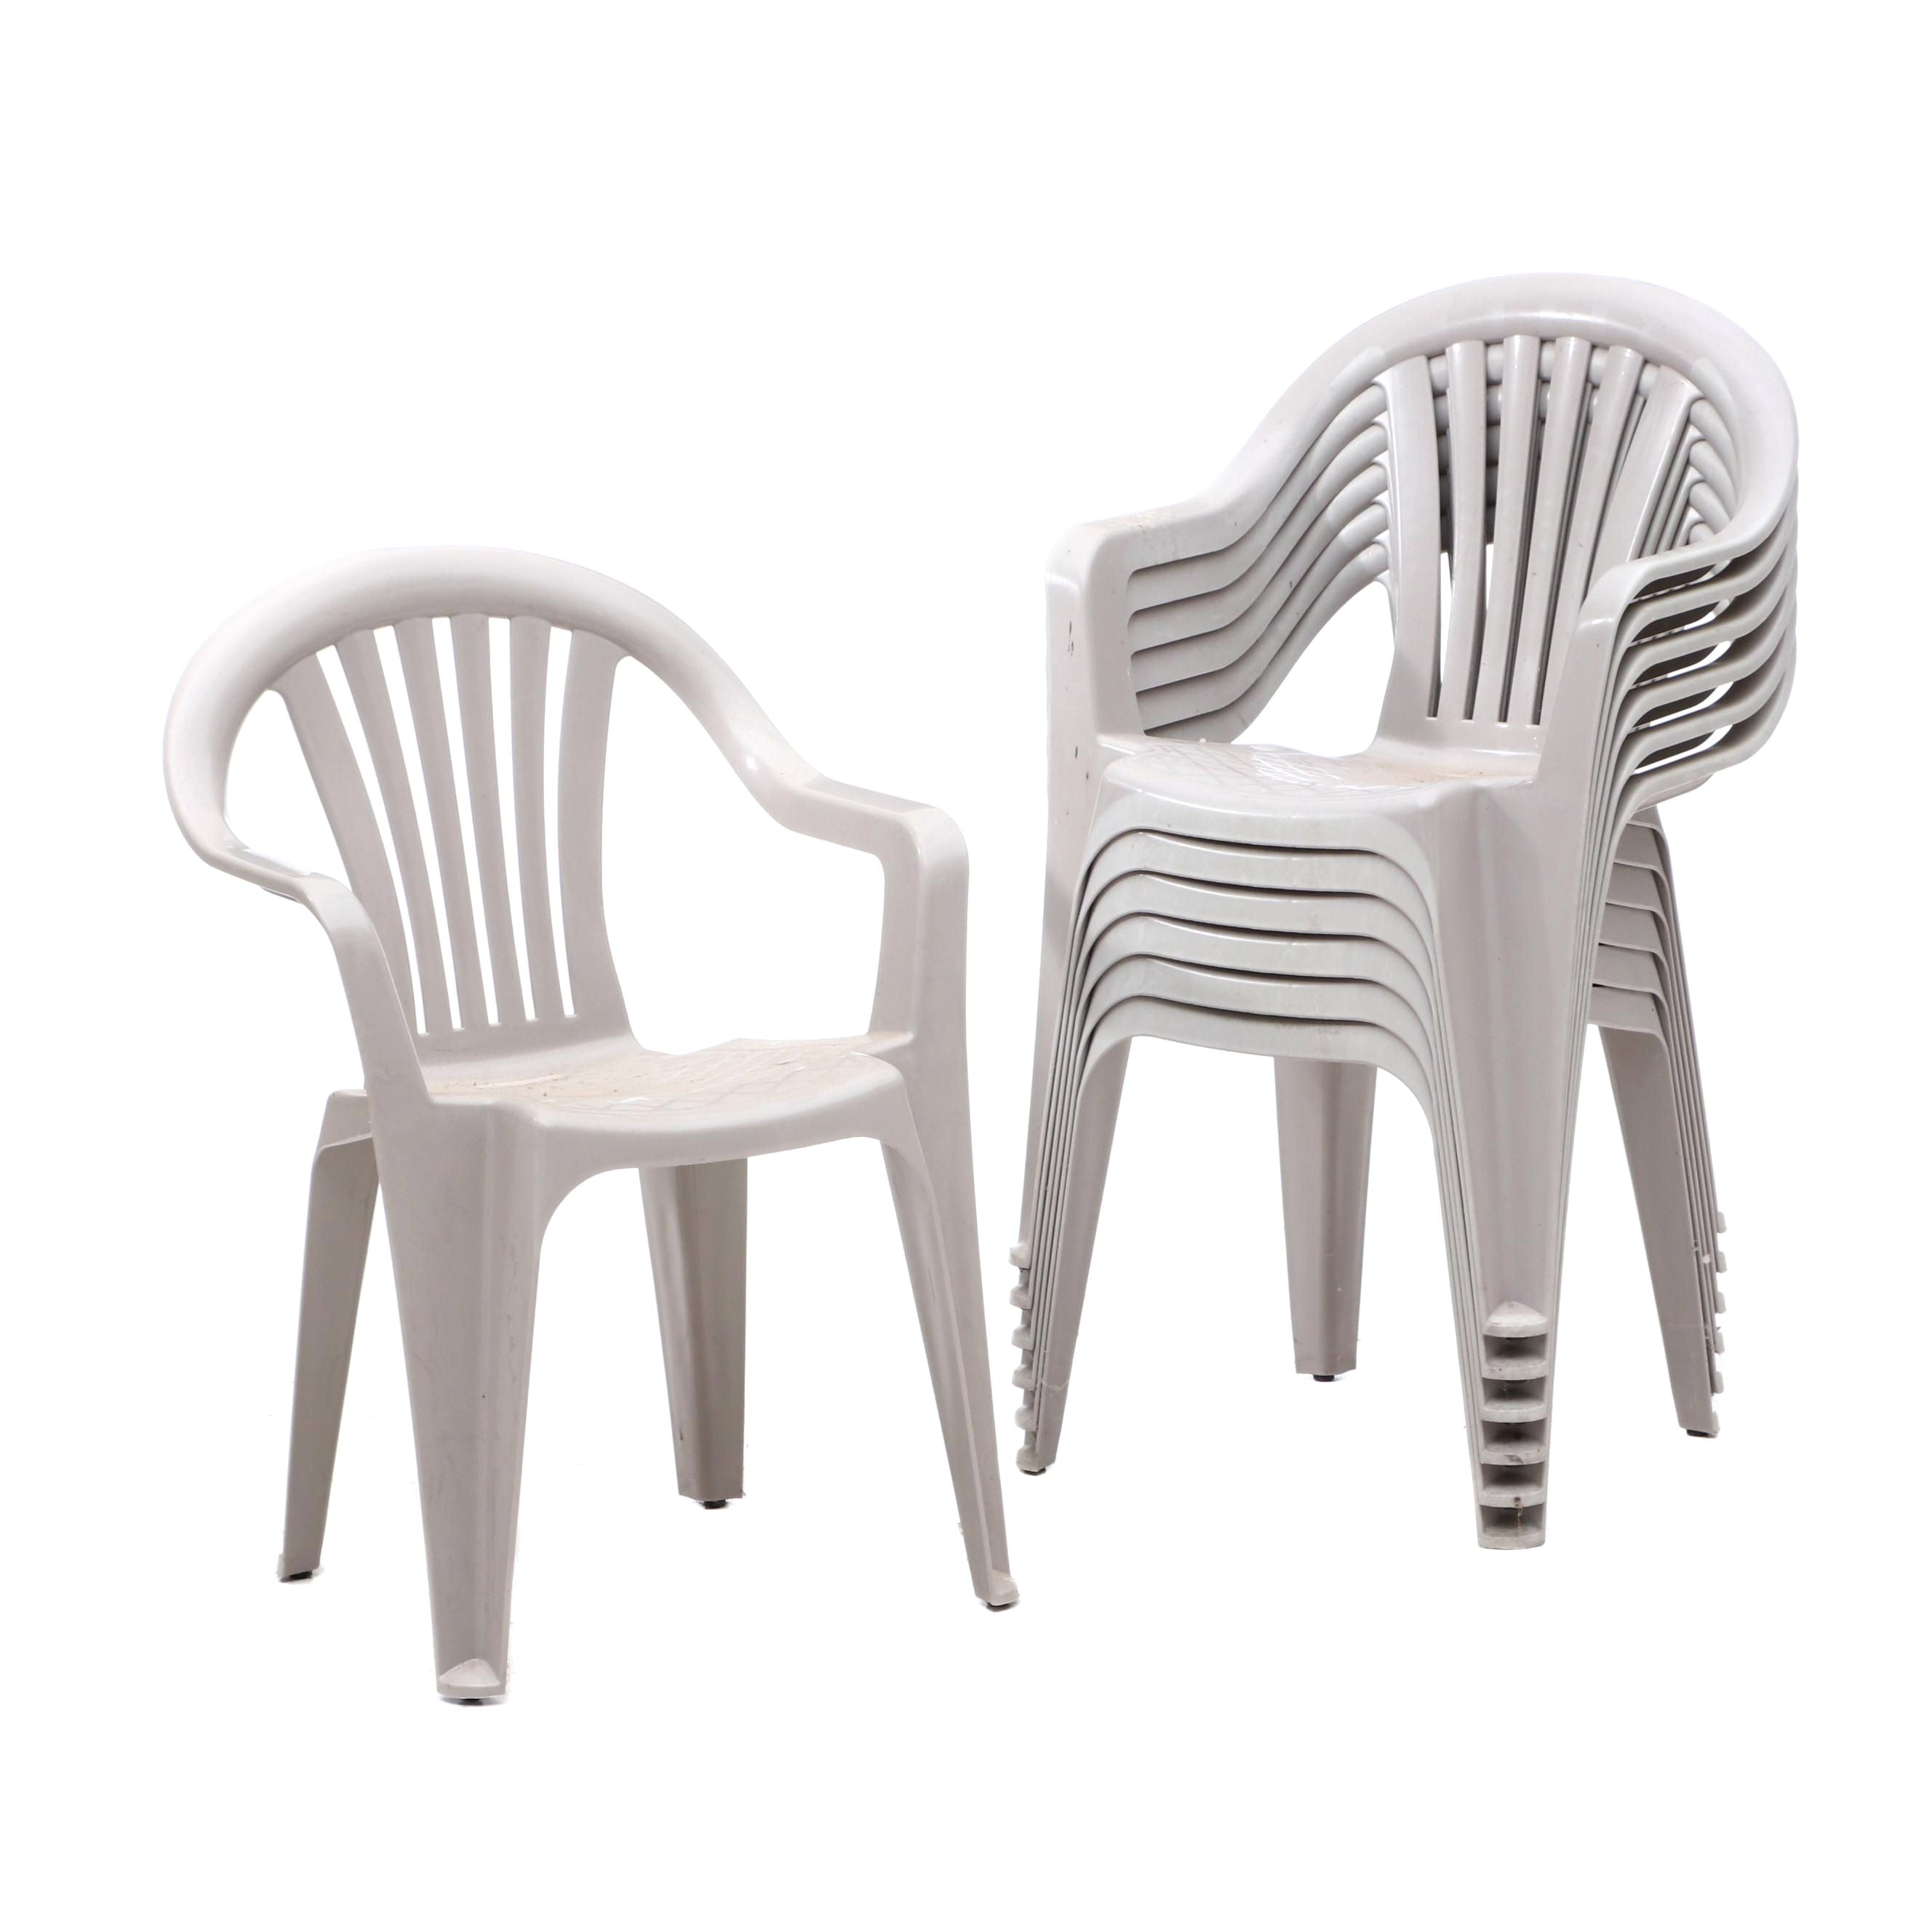 Stacking Plastic Patio Chairs in Gray